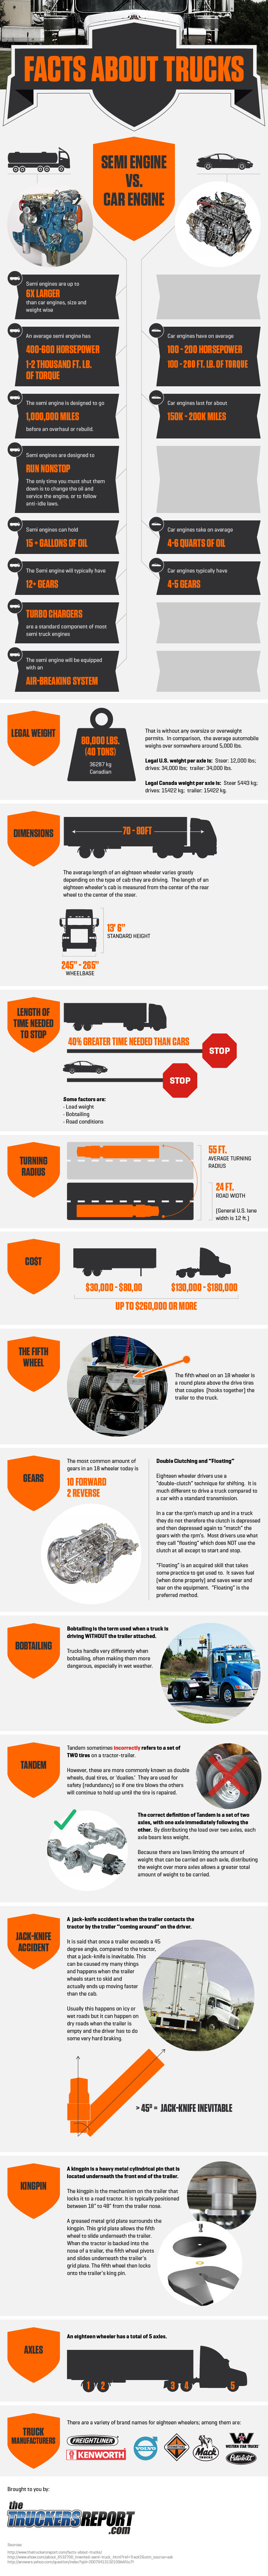 Facts About Trucks Infographic